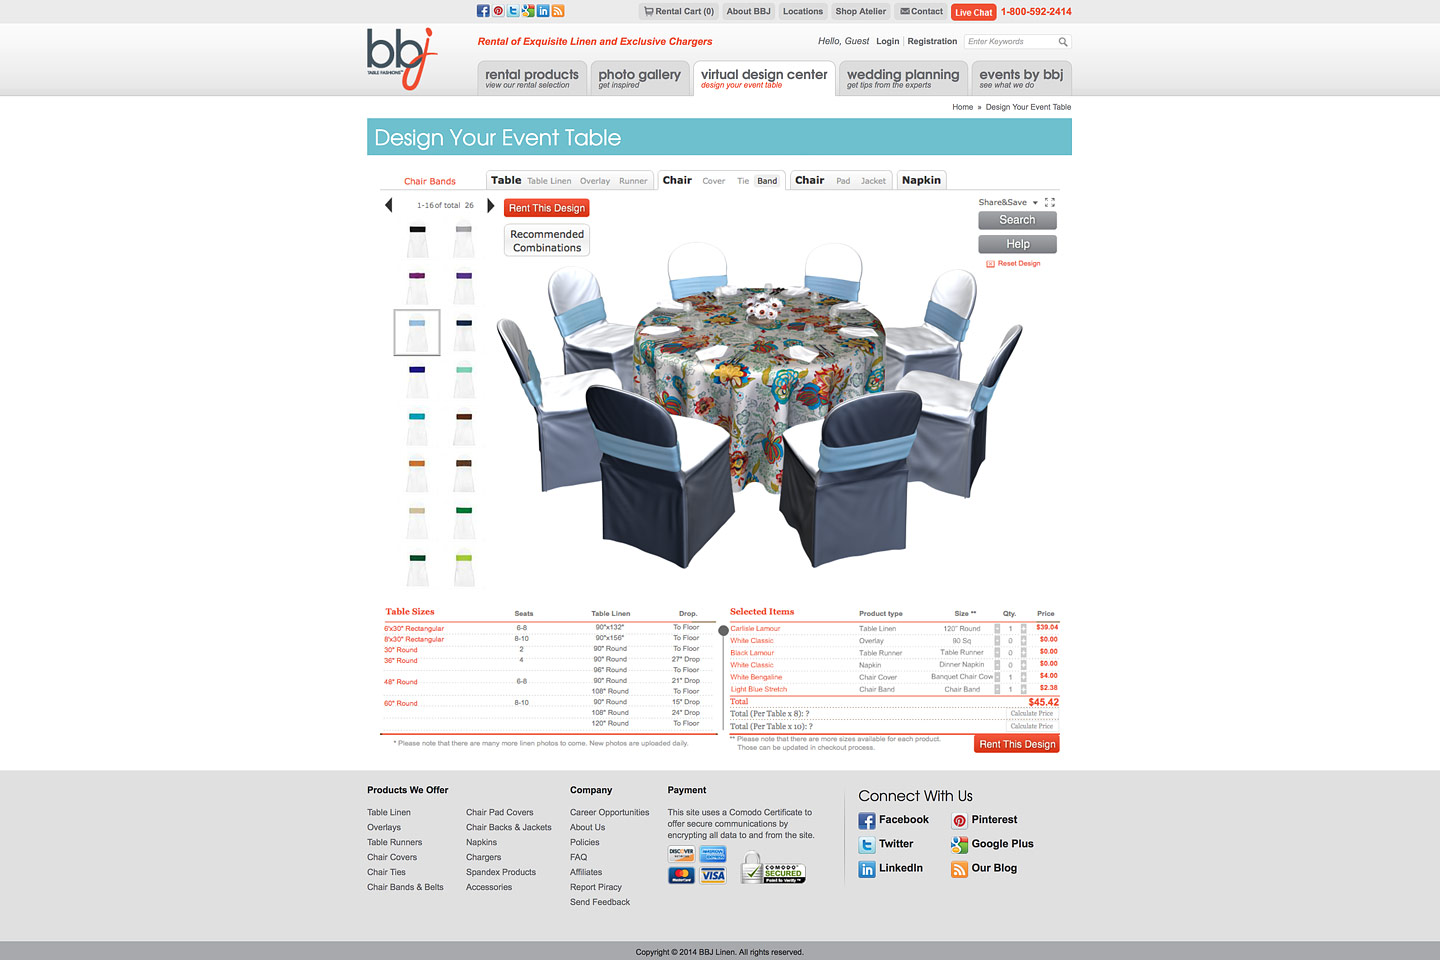 a screen capture of the bbjlinen.com virtual design center, where users can mix and match linens for a custom decorated event table and chairs